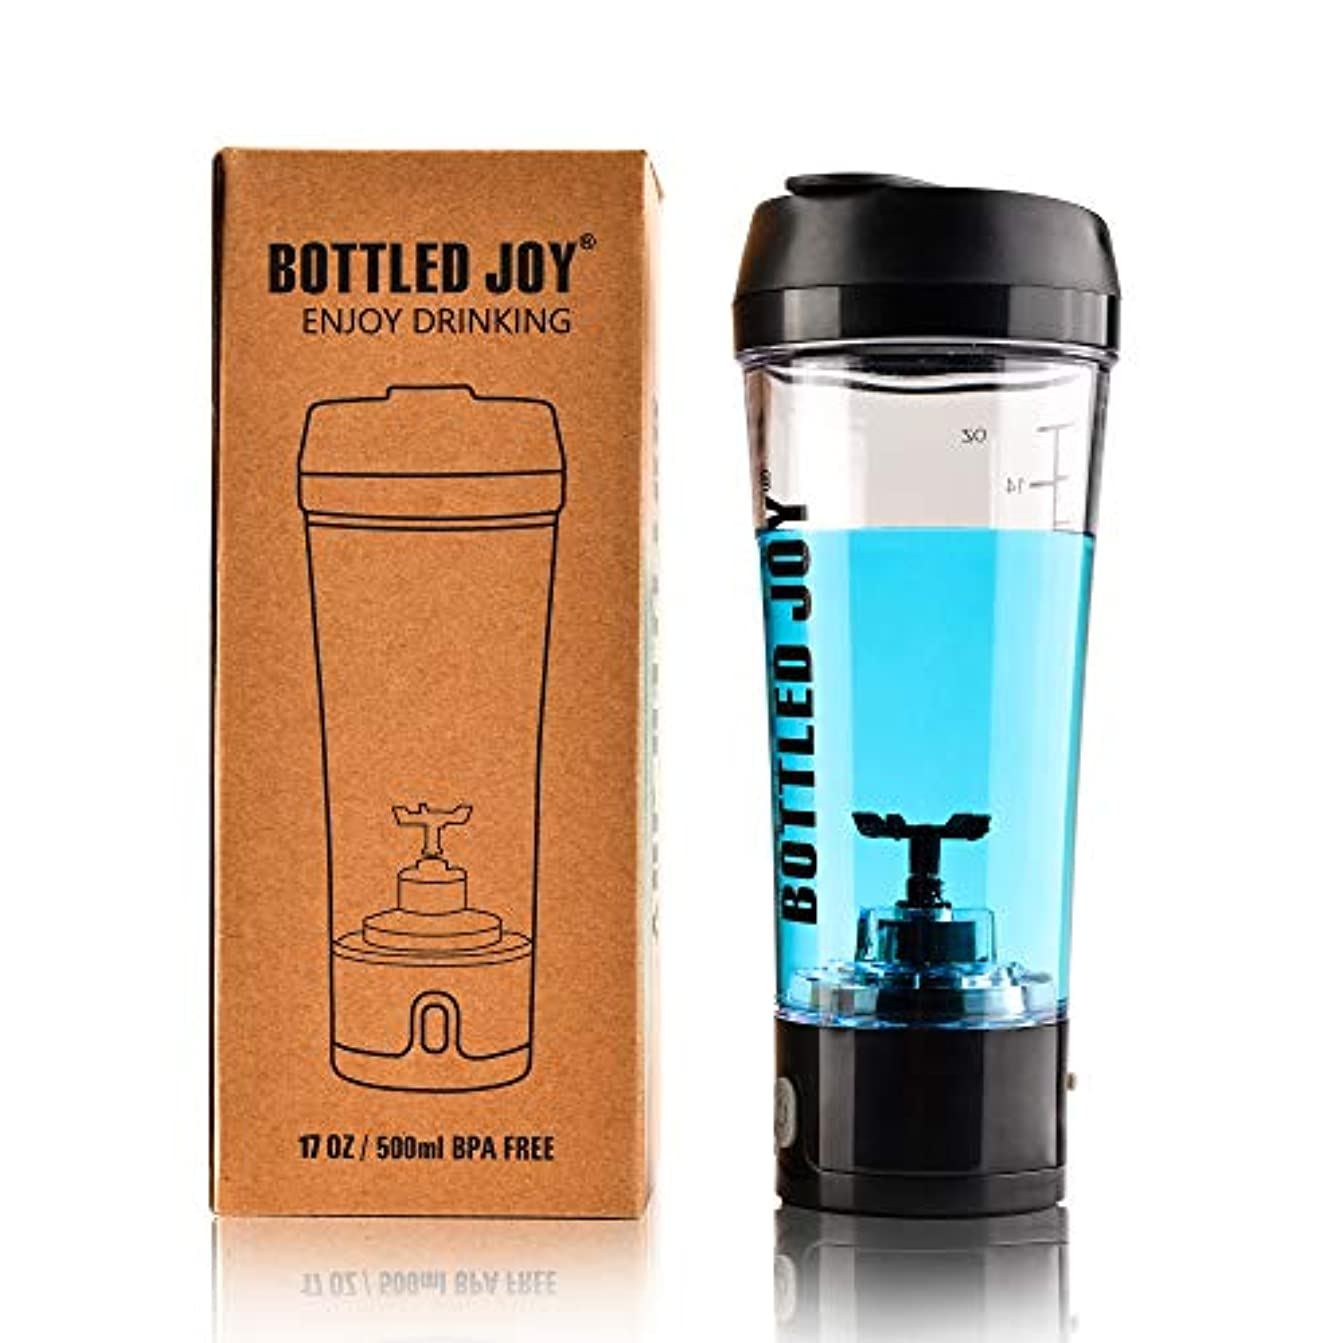 後方に退化するピューBottled Joy Electric Shaker Bottle、USB Rechargeable Protein Shaker、high-torque Stirring Blenderミキサーのスポーツマンと女性16oz...